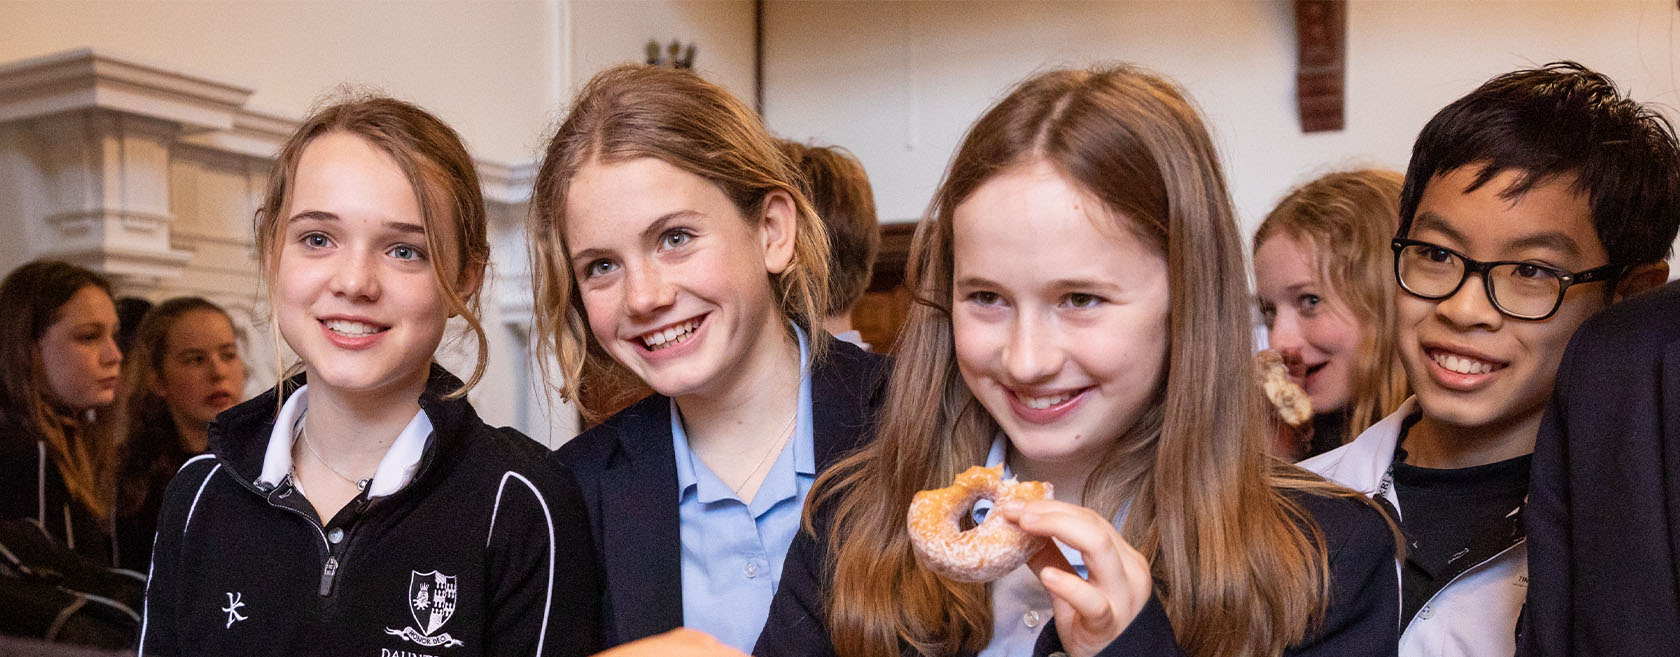 Dauntsey's School - meet a selection of our pupils